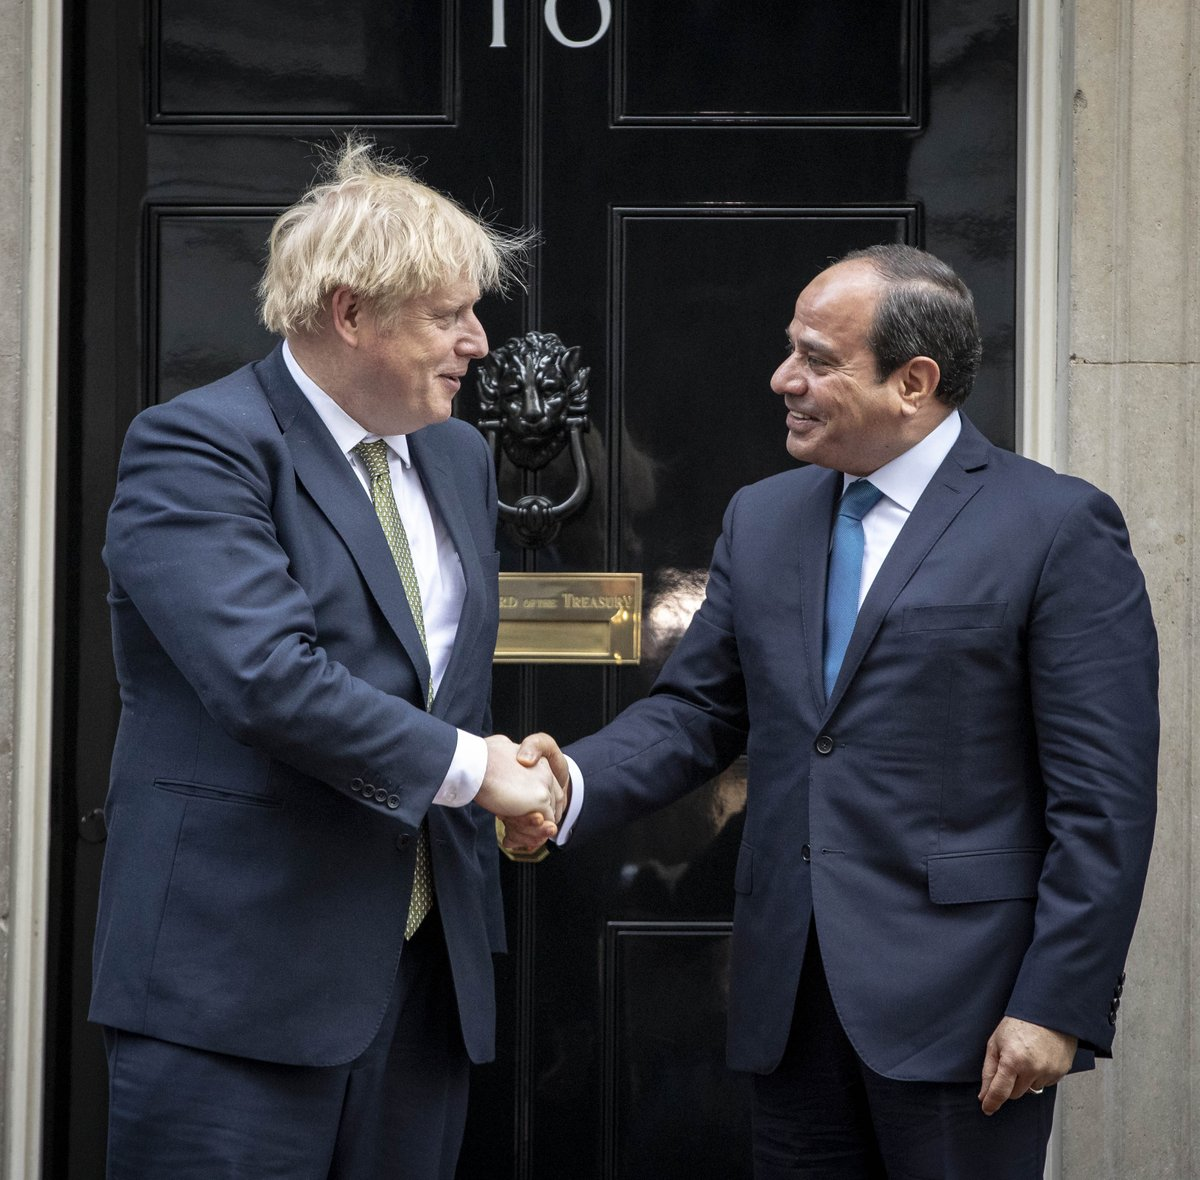 PM @BorisJohnson held talks with President @AlsisiOfficial of Egypt this morning in Downing Street. They spoke about the importance of trade and education links between the UK and Egypt, and the need to strengthen them. They also discussed the situation in Libya.